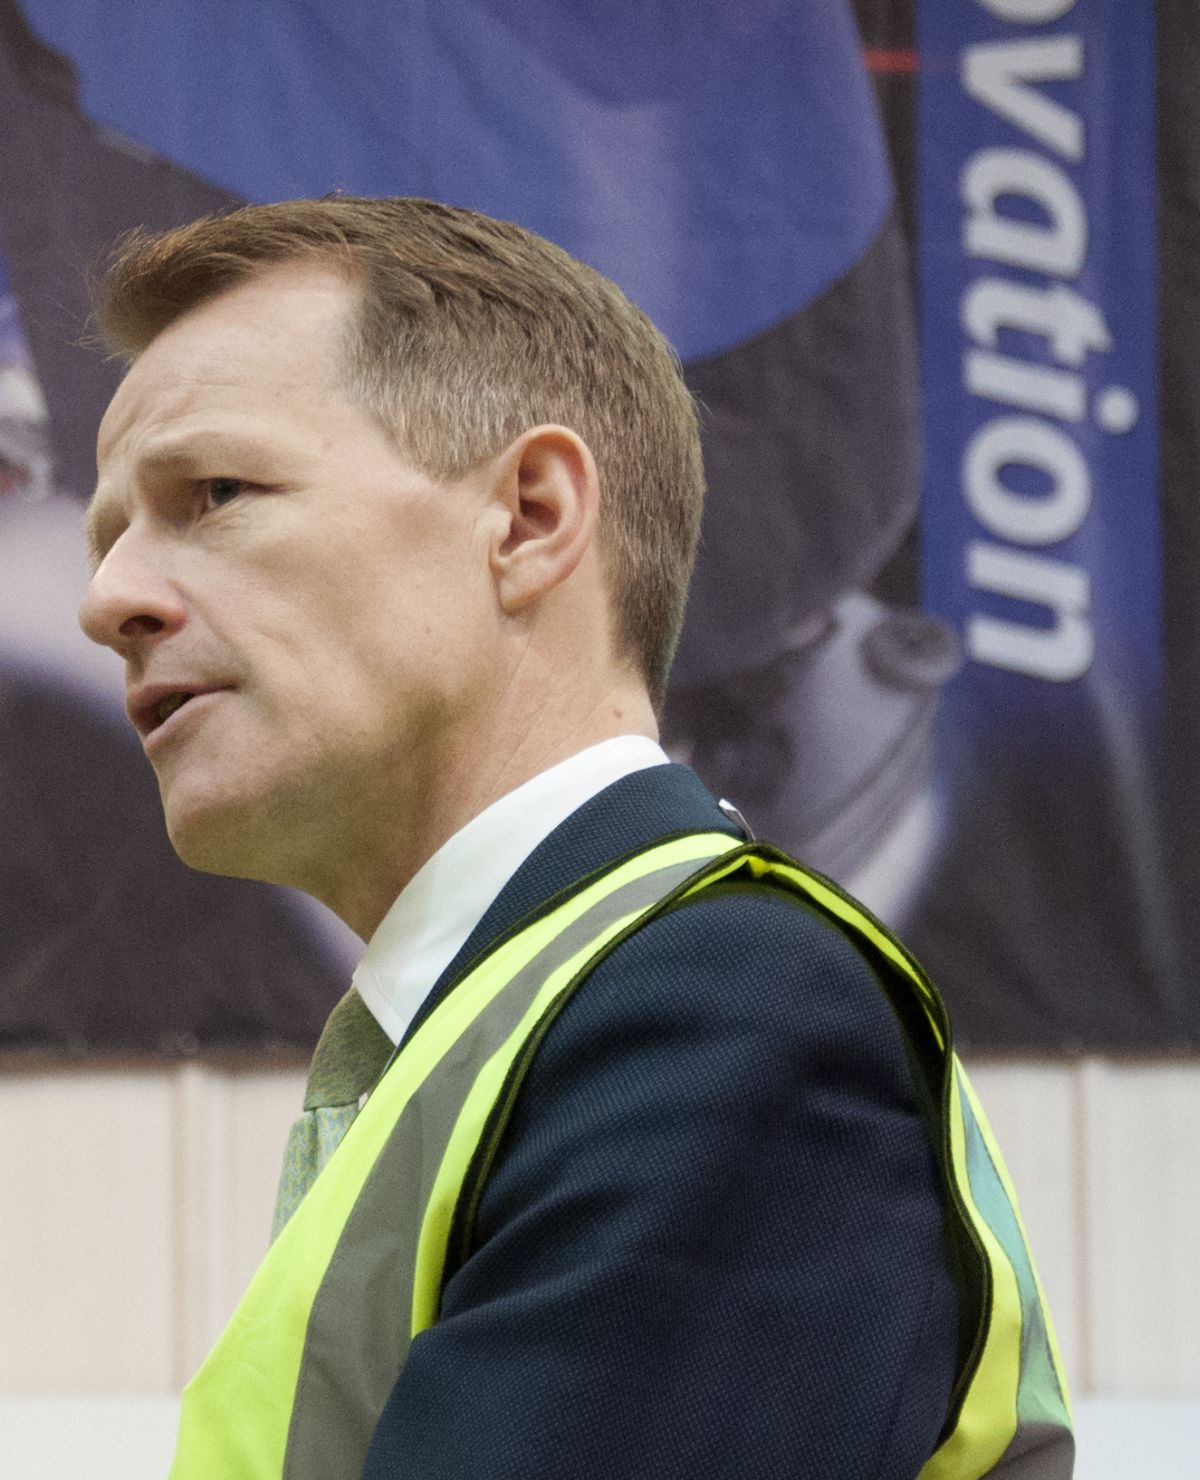 DAVID Laws MP during his visit to N